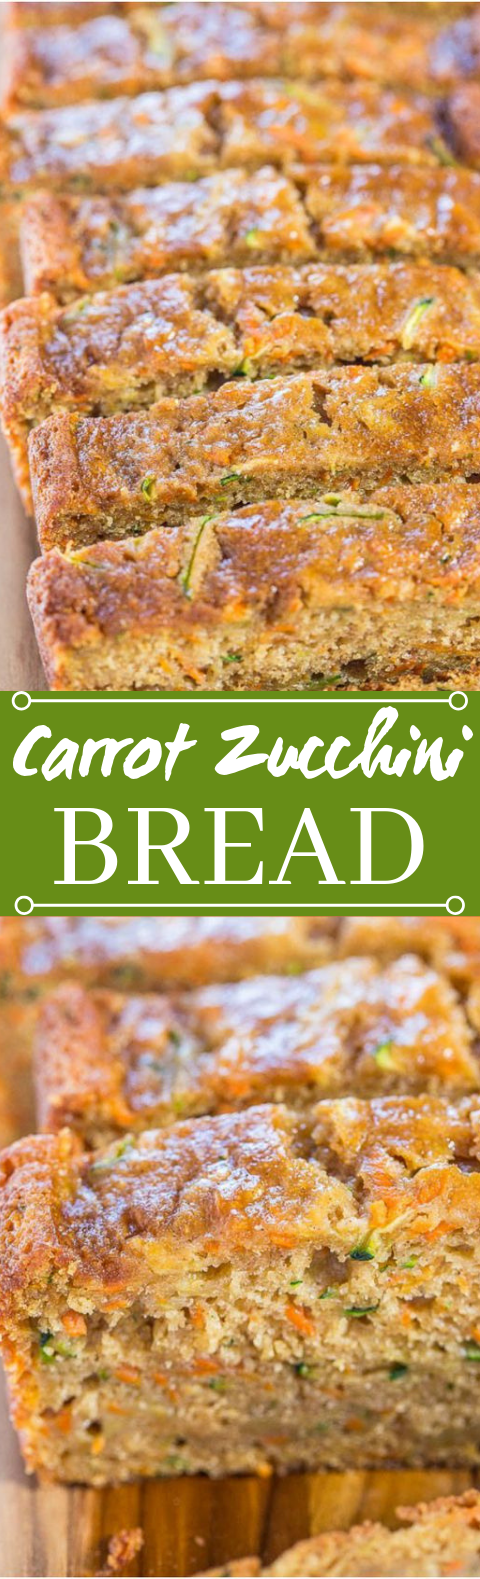 Carrot Zucchini Bread #vegetarian #breakfast